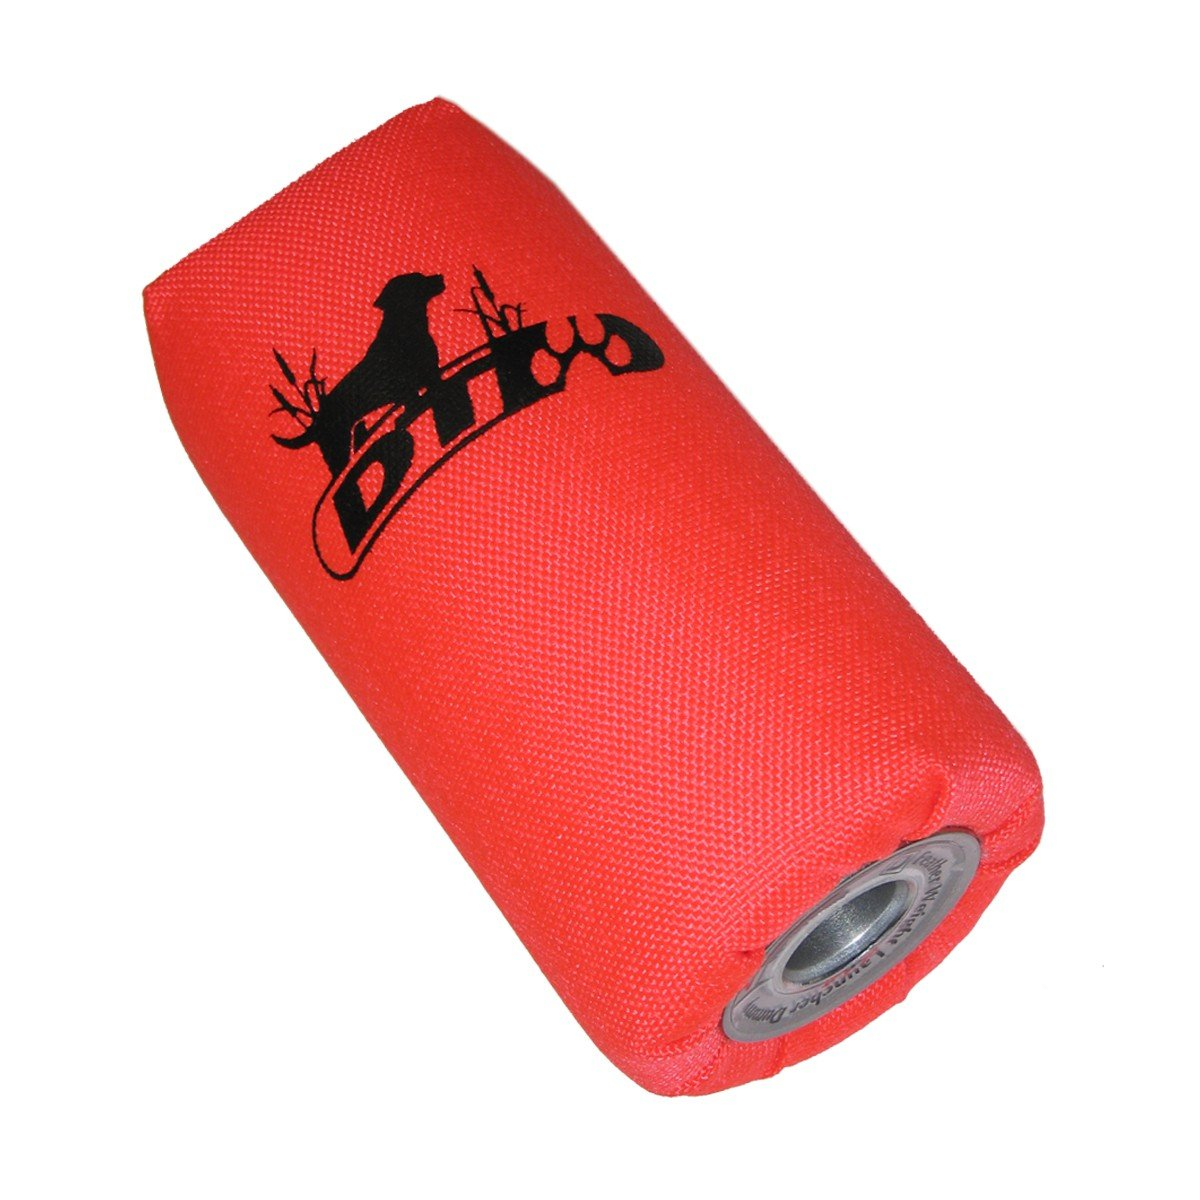 D.T. Systems Super-Pro Dog Training Launcher Dummy, Blaze Orange by D.T. Systems